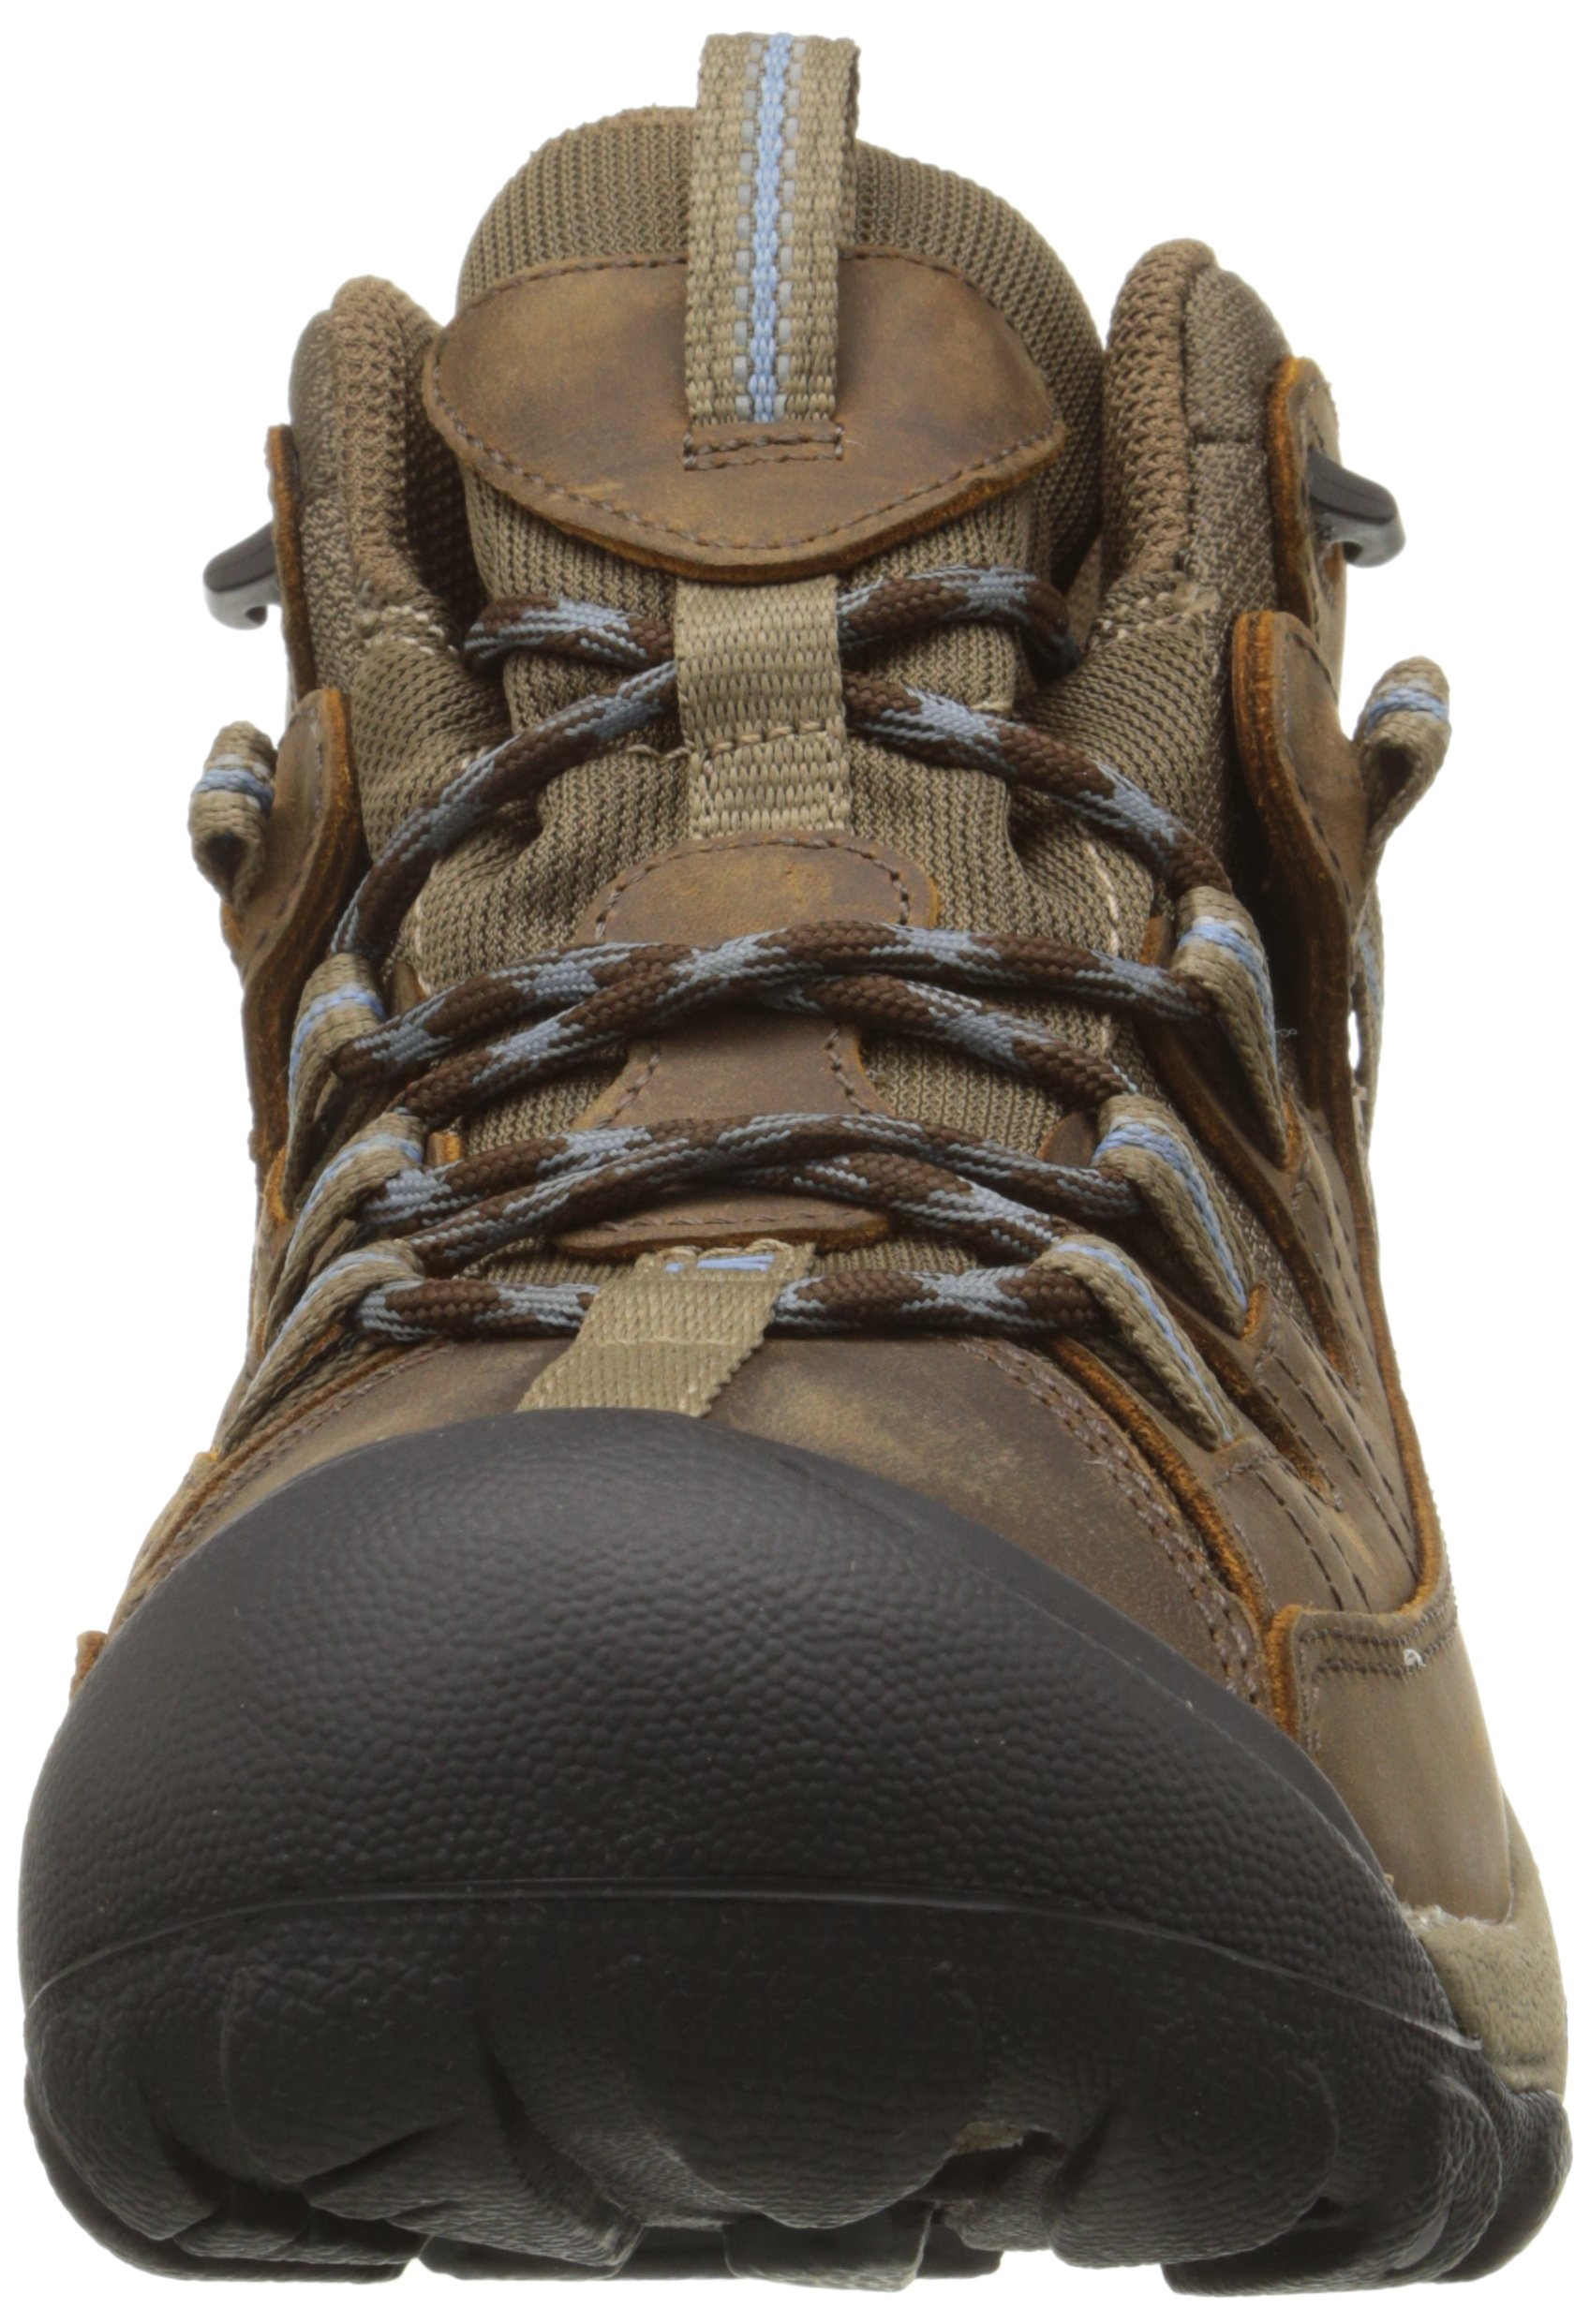 KEEN Women's Targhee II Mid Waterproof Hiking Boot,Slate Black/Flint Stone,8.5 M US by KEEN (Image #4)